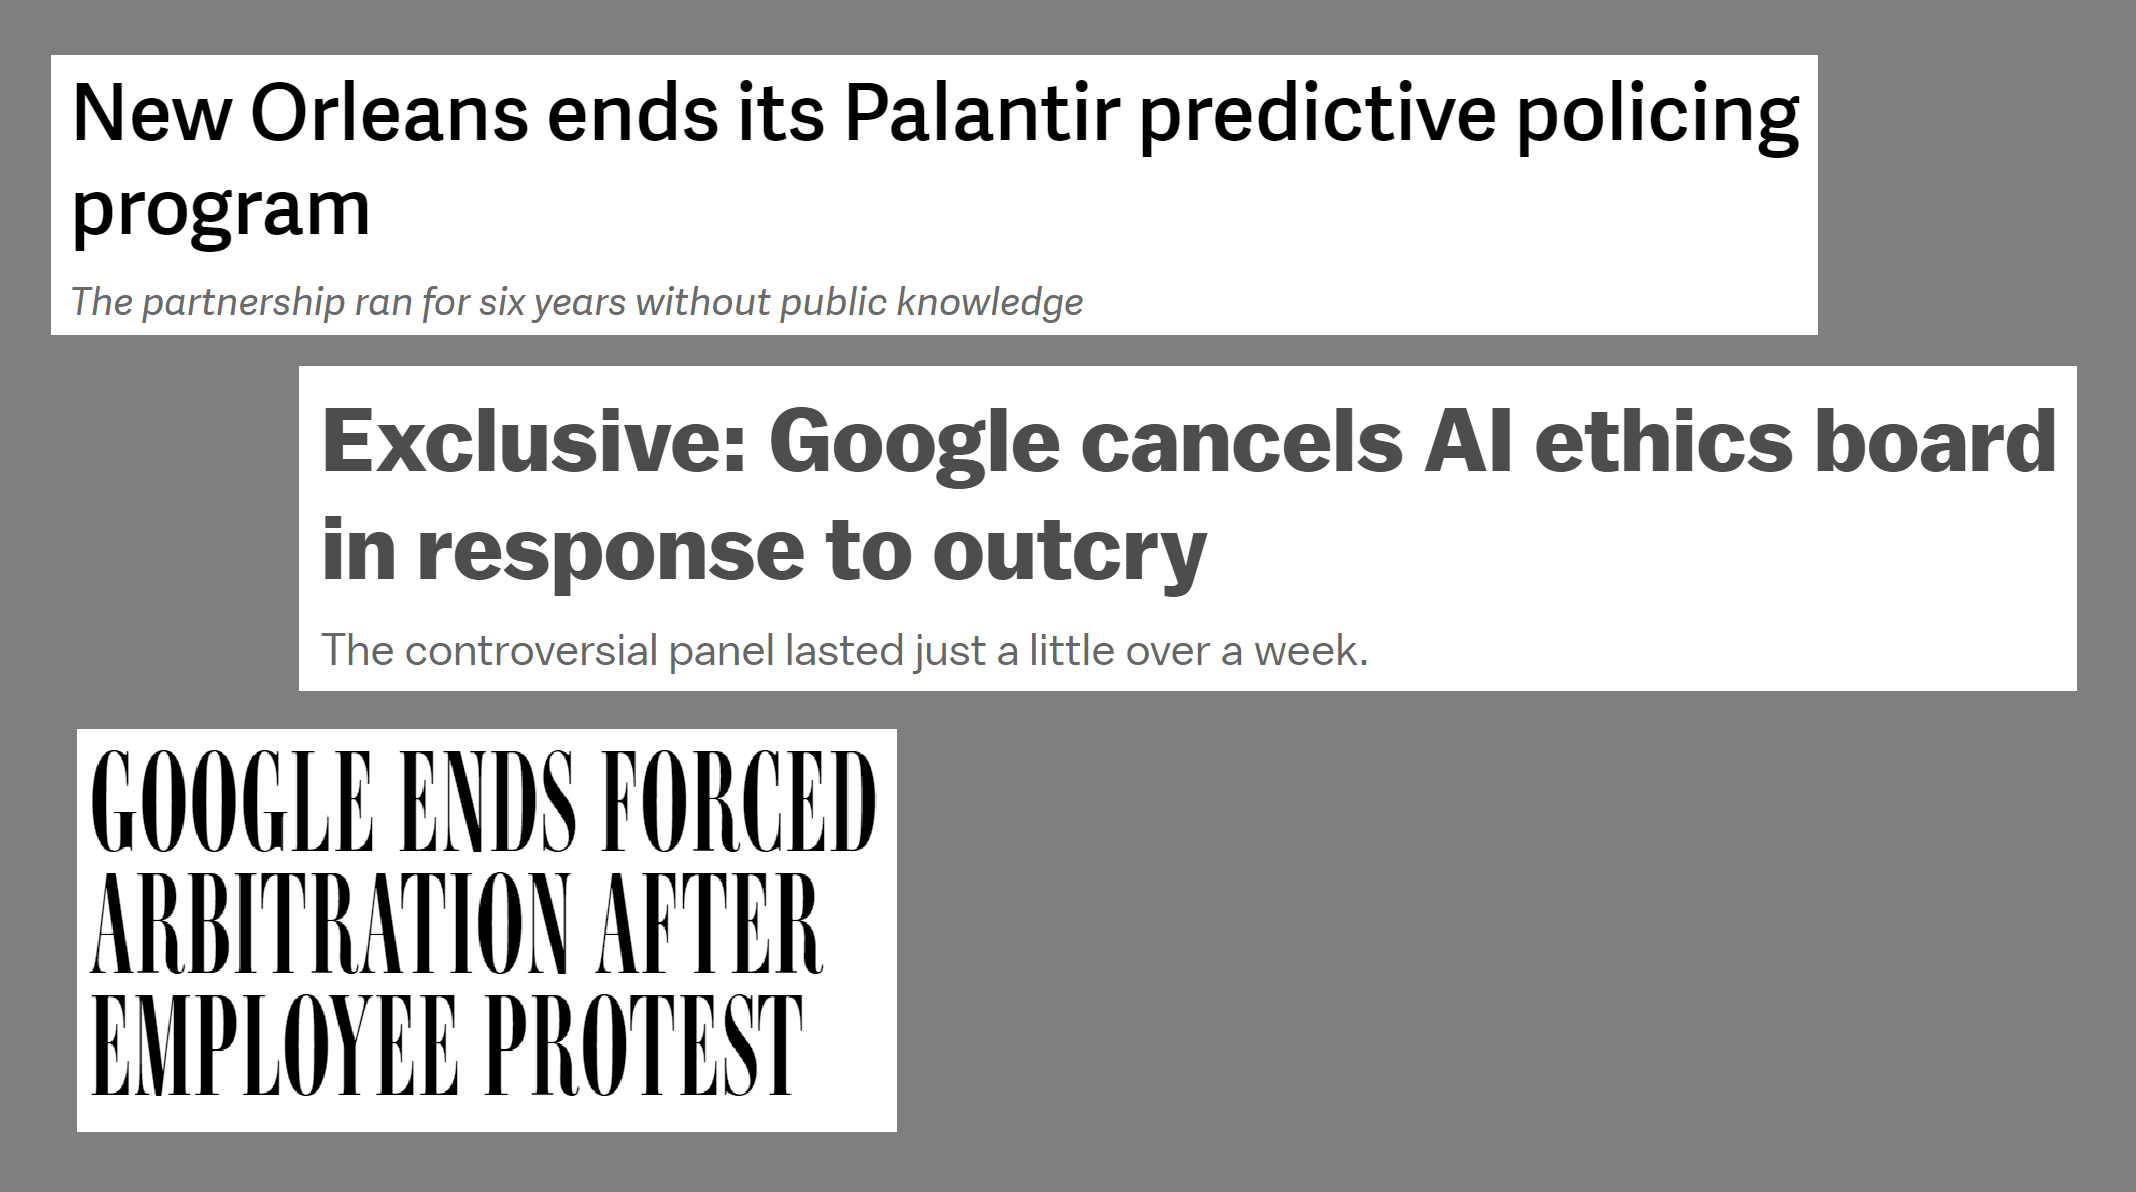 Some positive news: New Orleans canceled its program with Palantir, Google ending forced arbitration, and Google canceled 'AI ethics' board which included a bigot